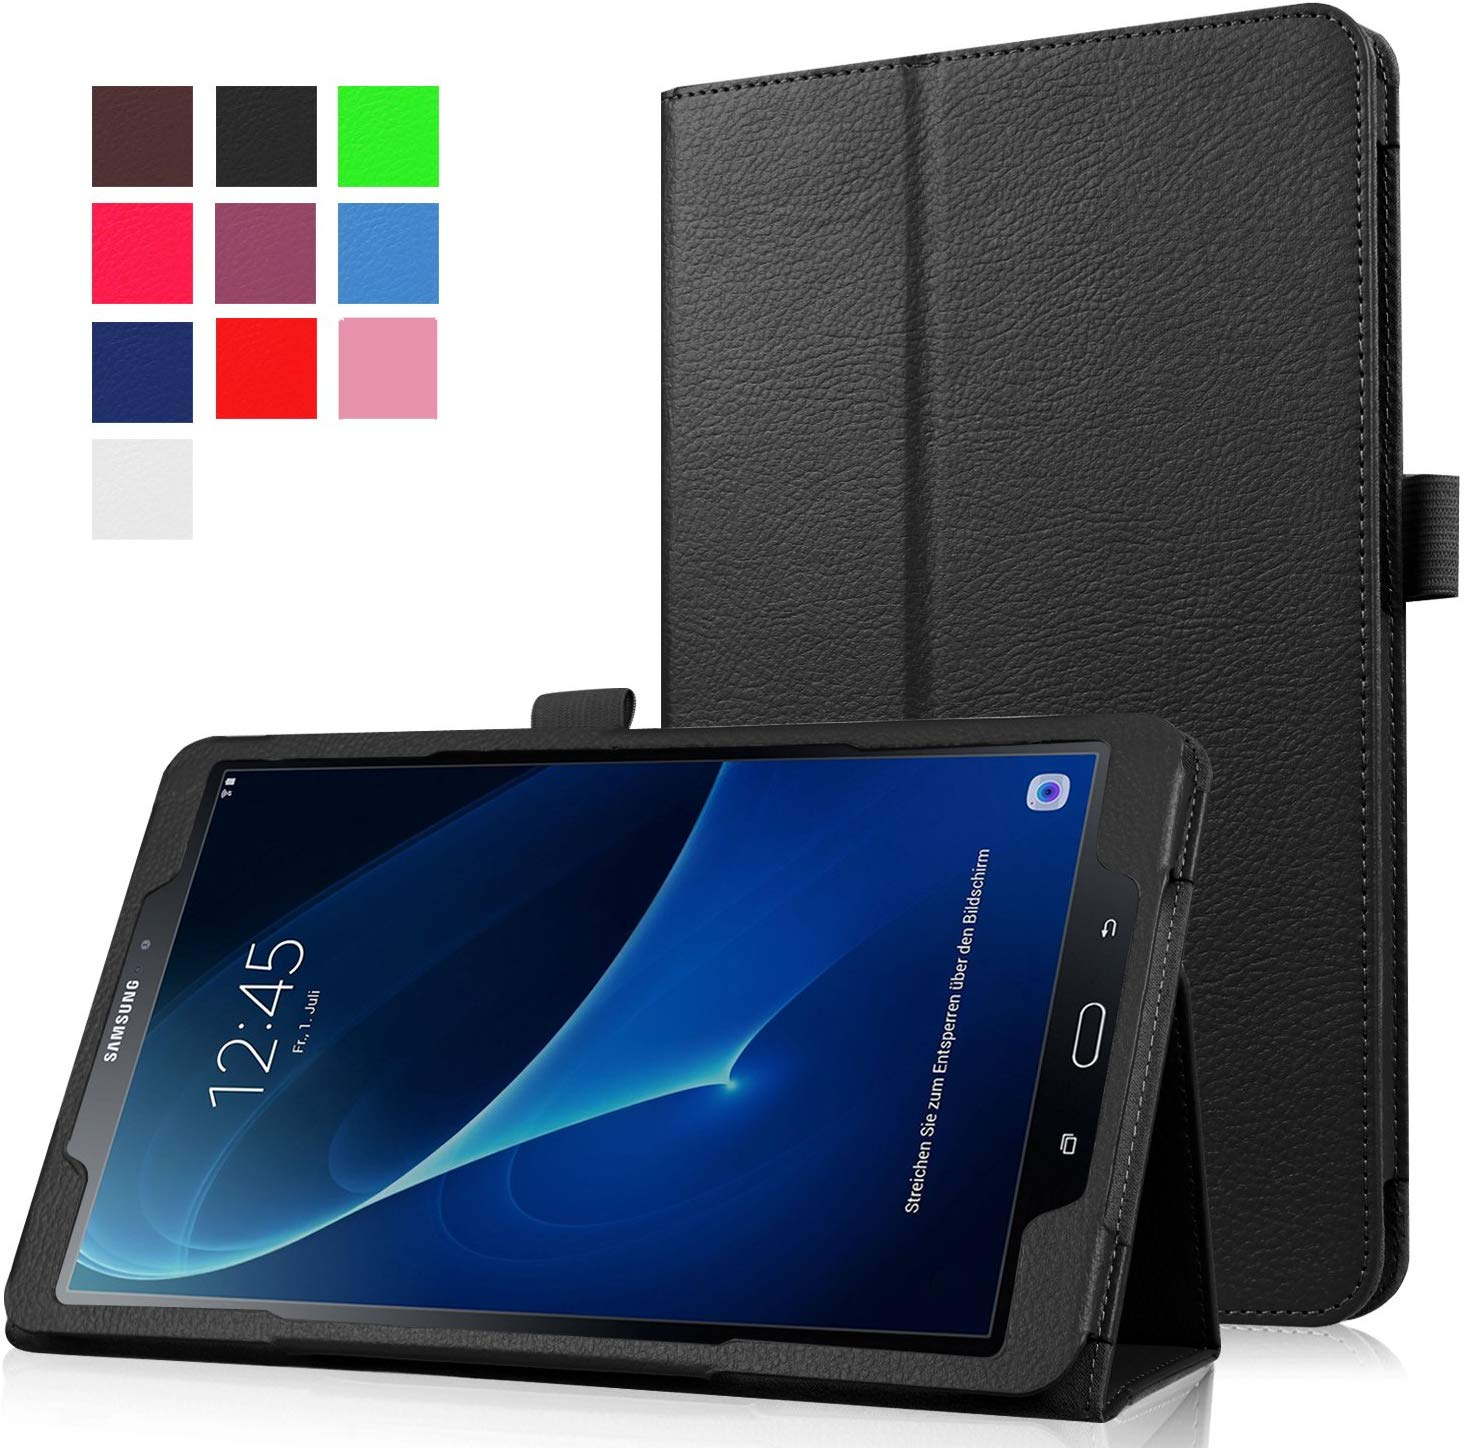 Business Flip Case For Samsung Galaxy Tab A 10.1 2016 T580 <font><b>T585</b></font> T580N T585N Smart Stand Holder Magnetic Auto Wake Up Sleep Cover image